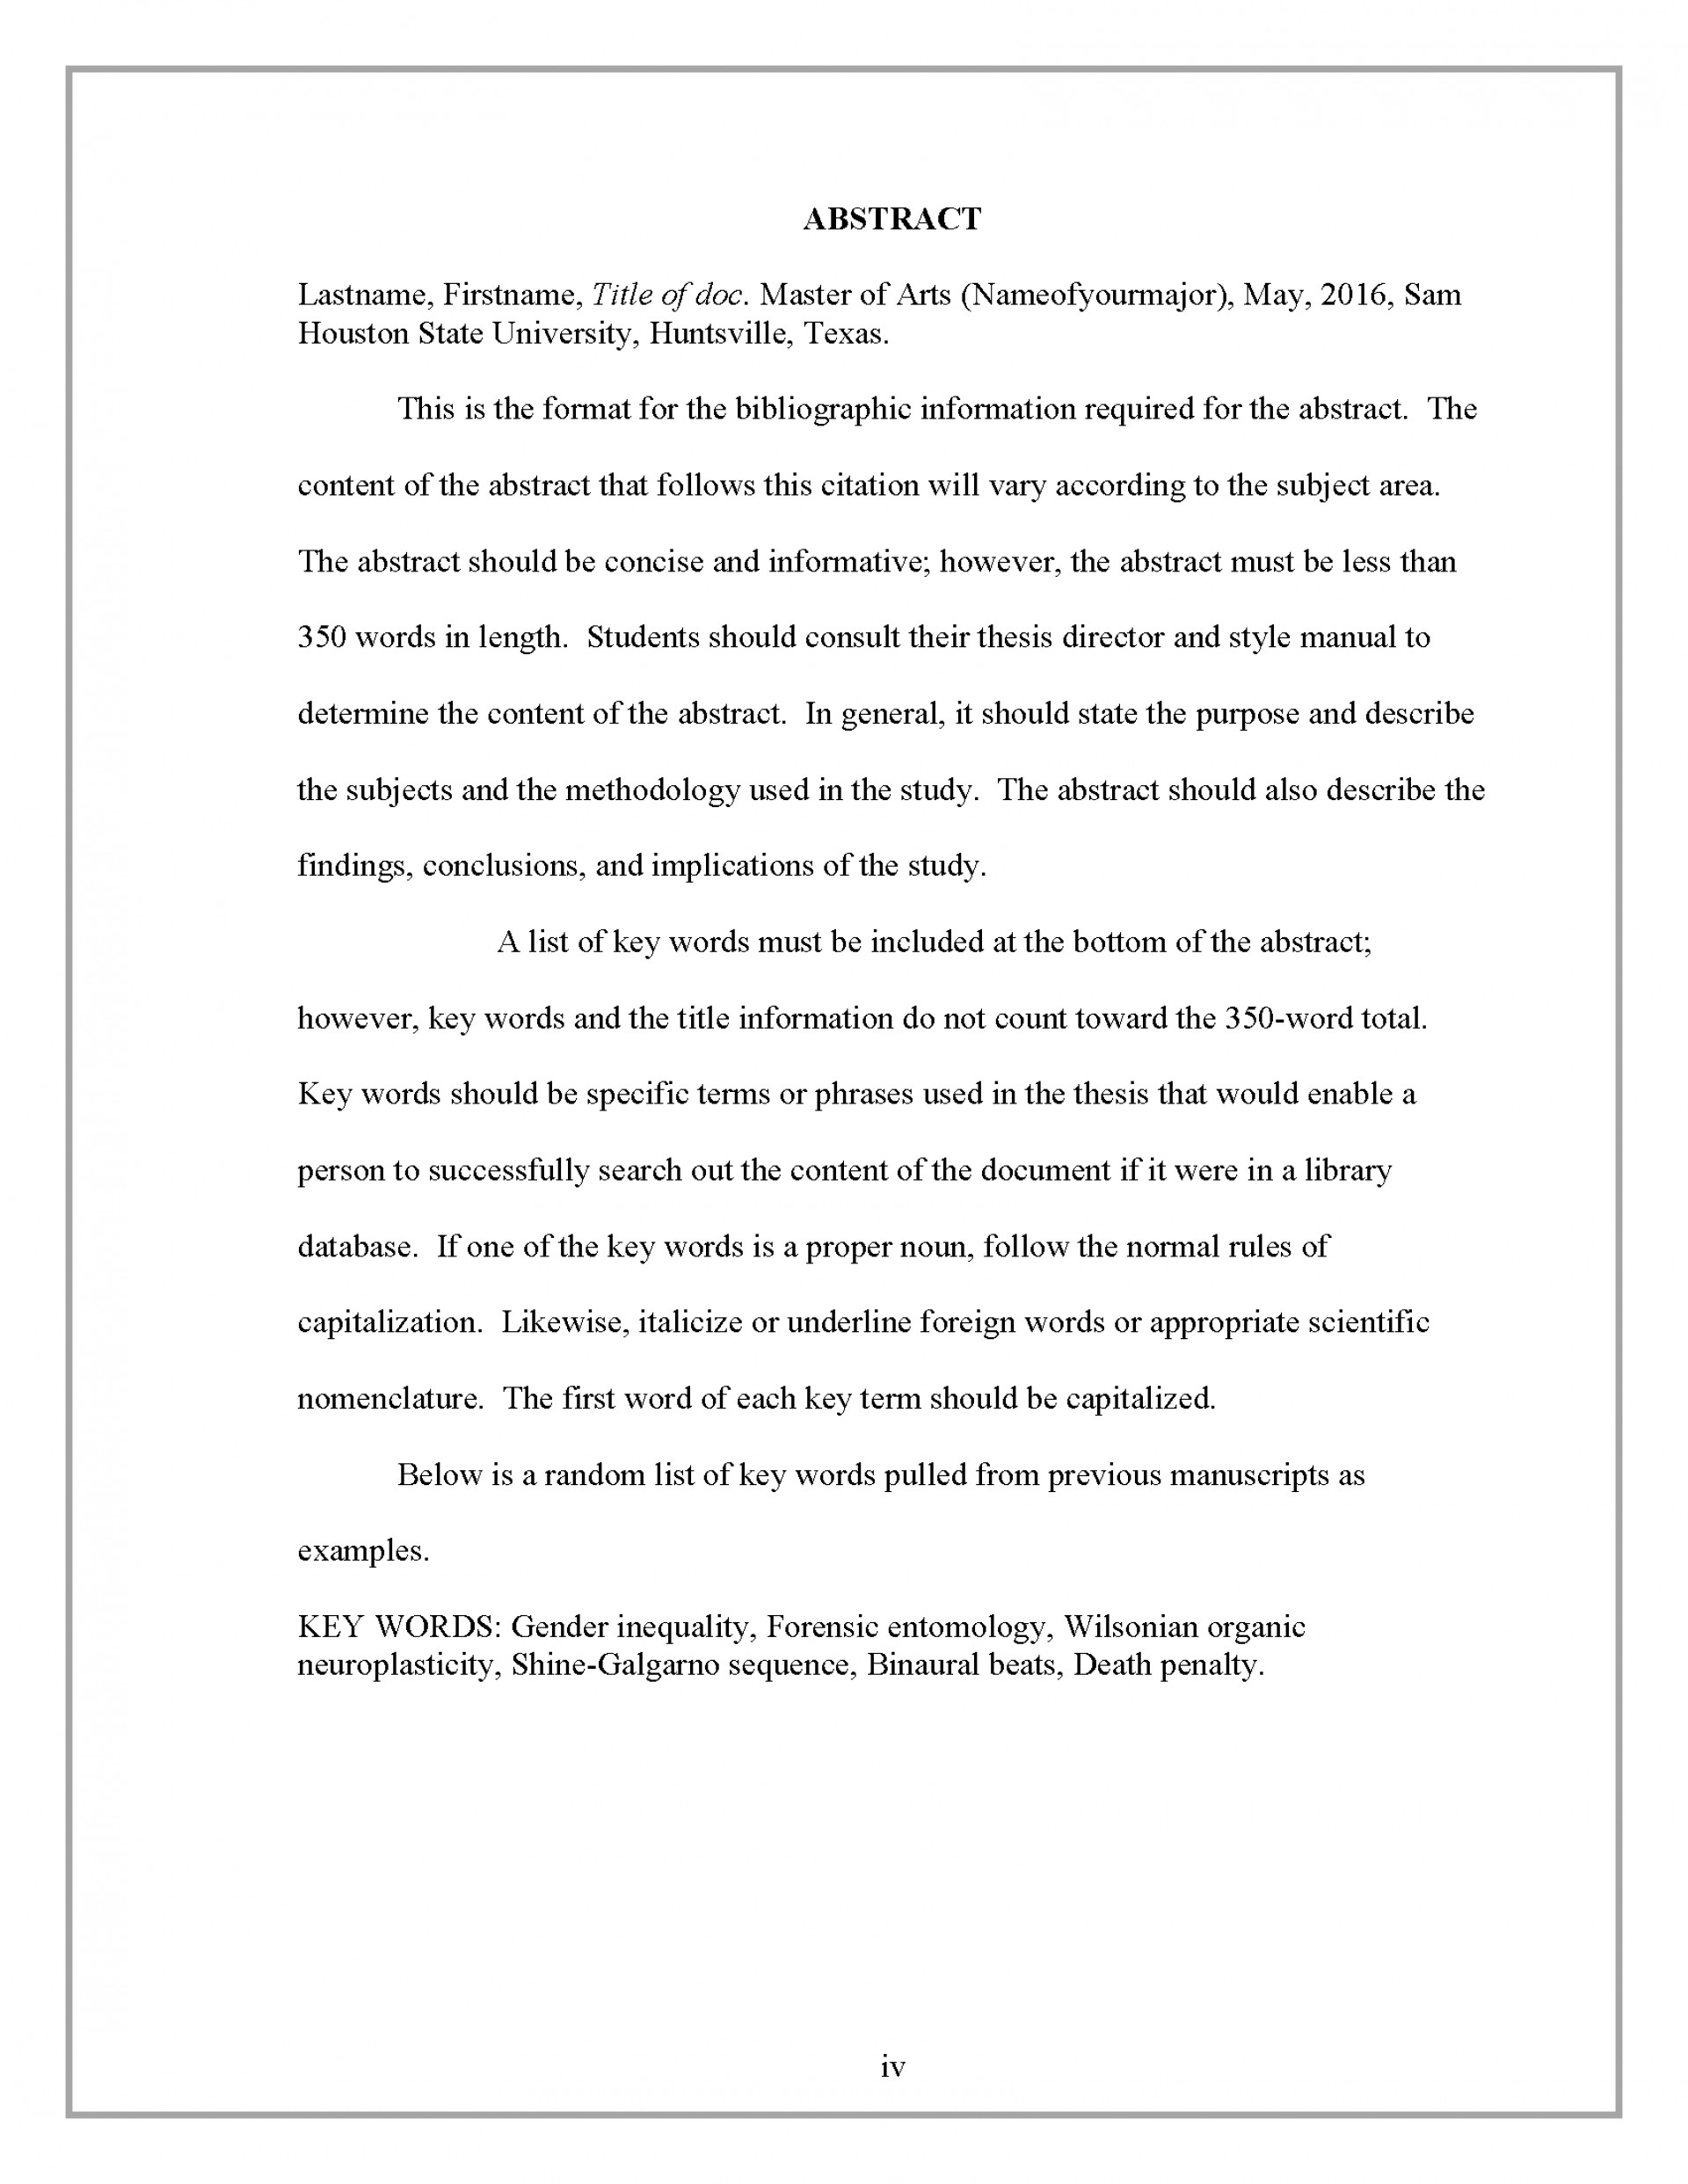 001 Business Abstract Example Border Research Wonderful Proposal Plan 1920